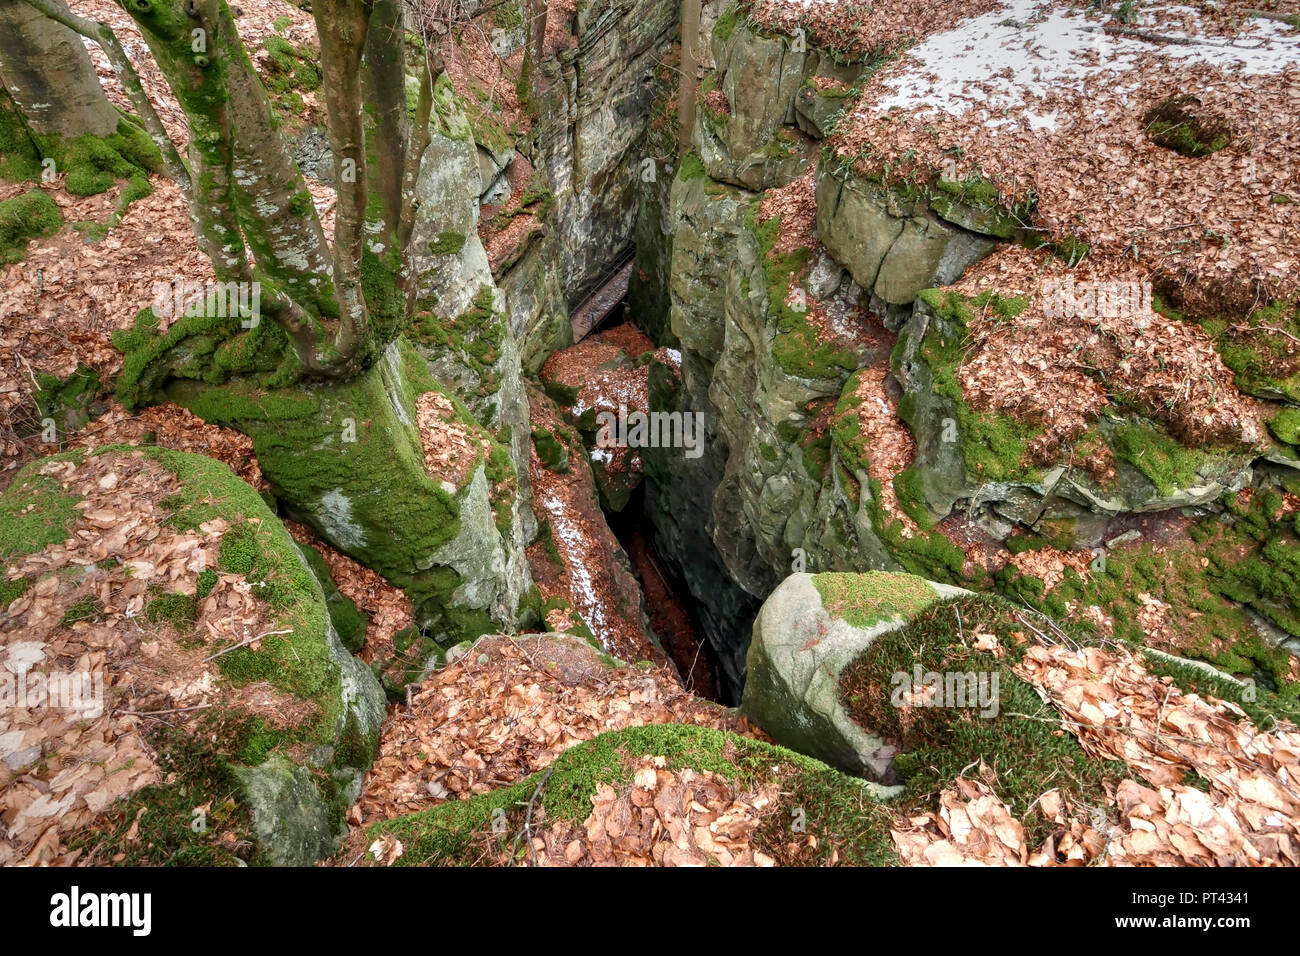 View into crevice, Teufelsschlucht bei Ernzen, Sudeifel, Rhineland-Palatinate, Germany - Stock Image